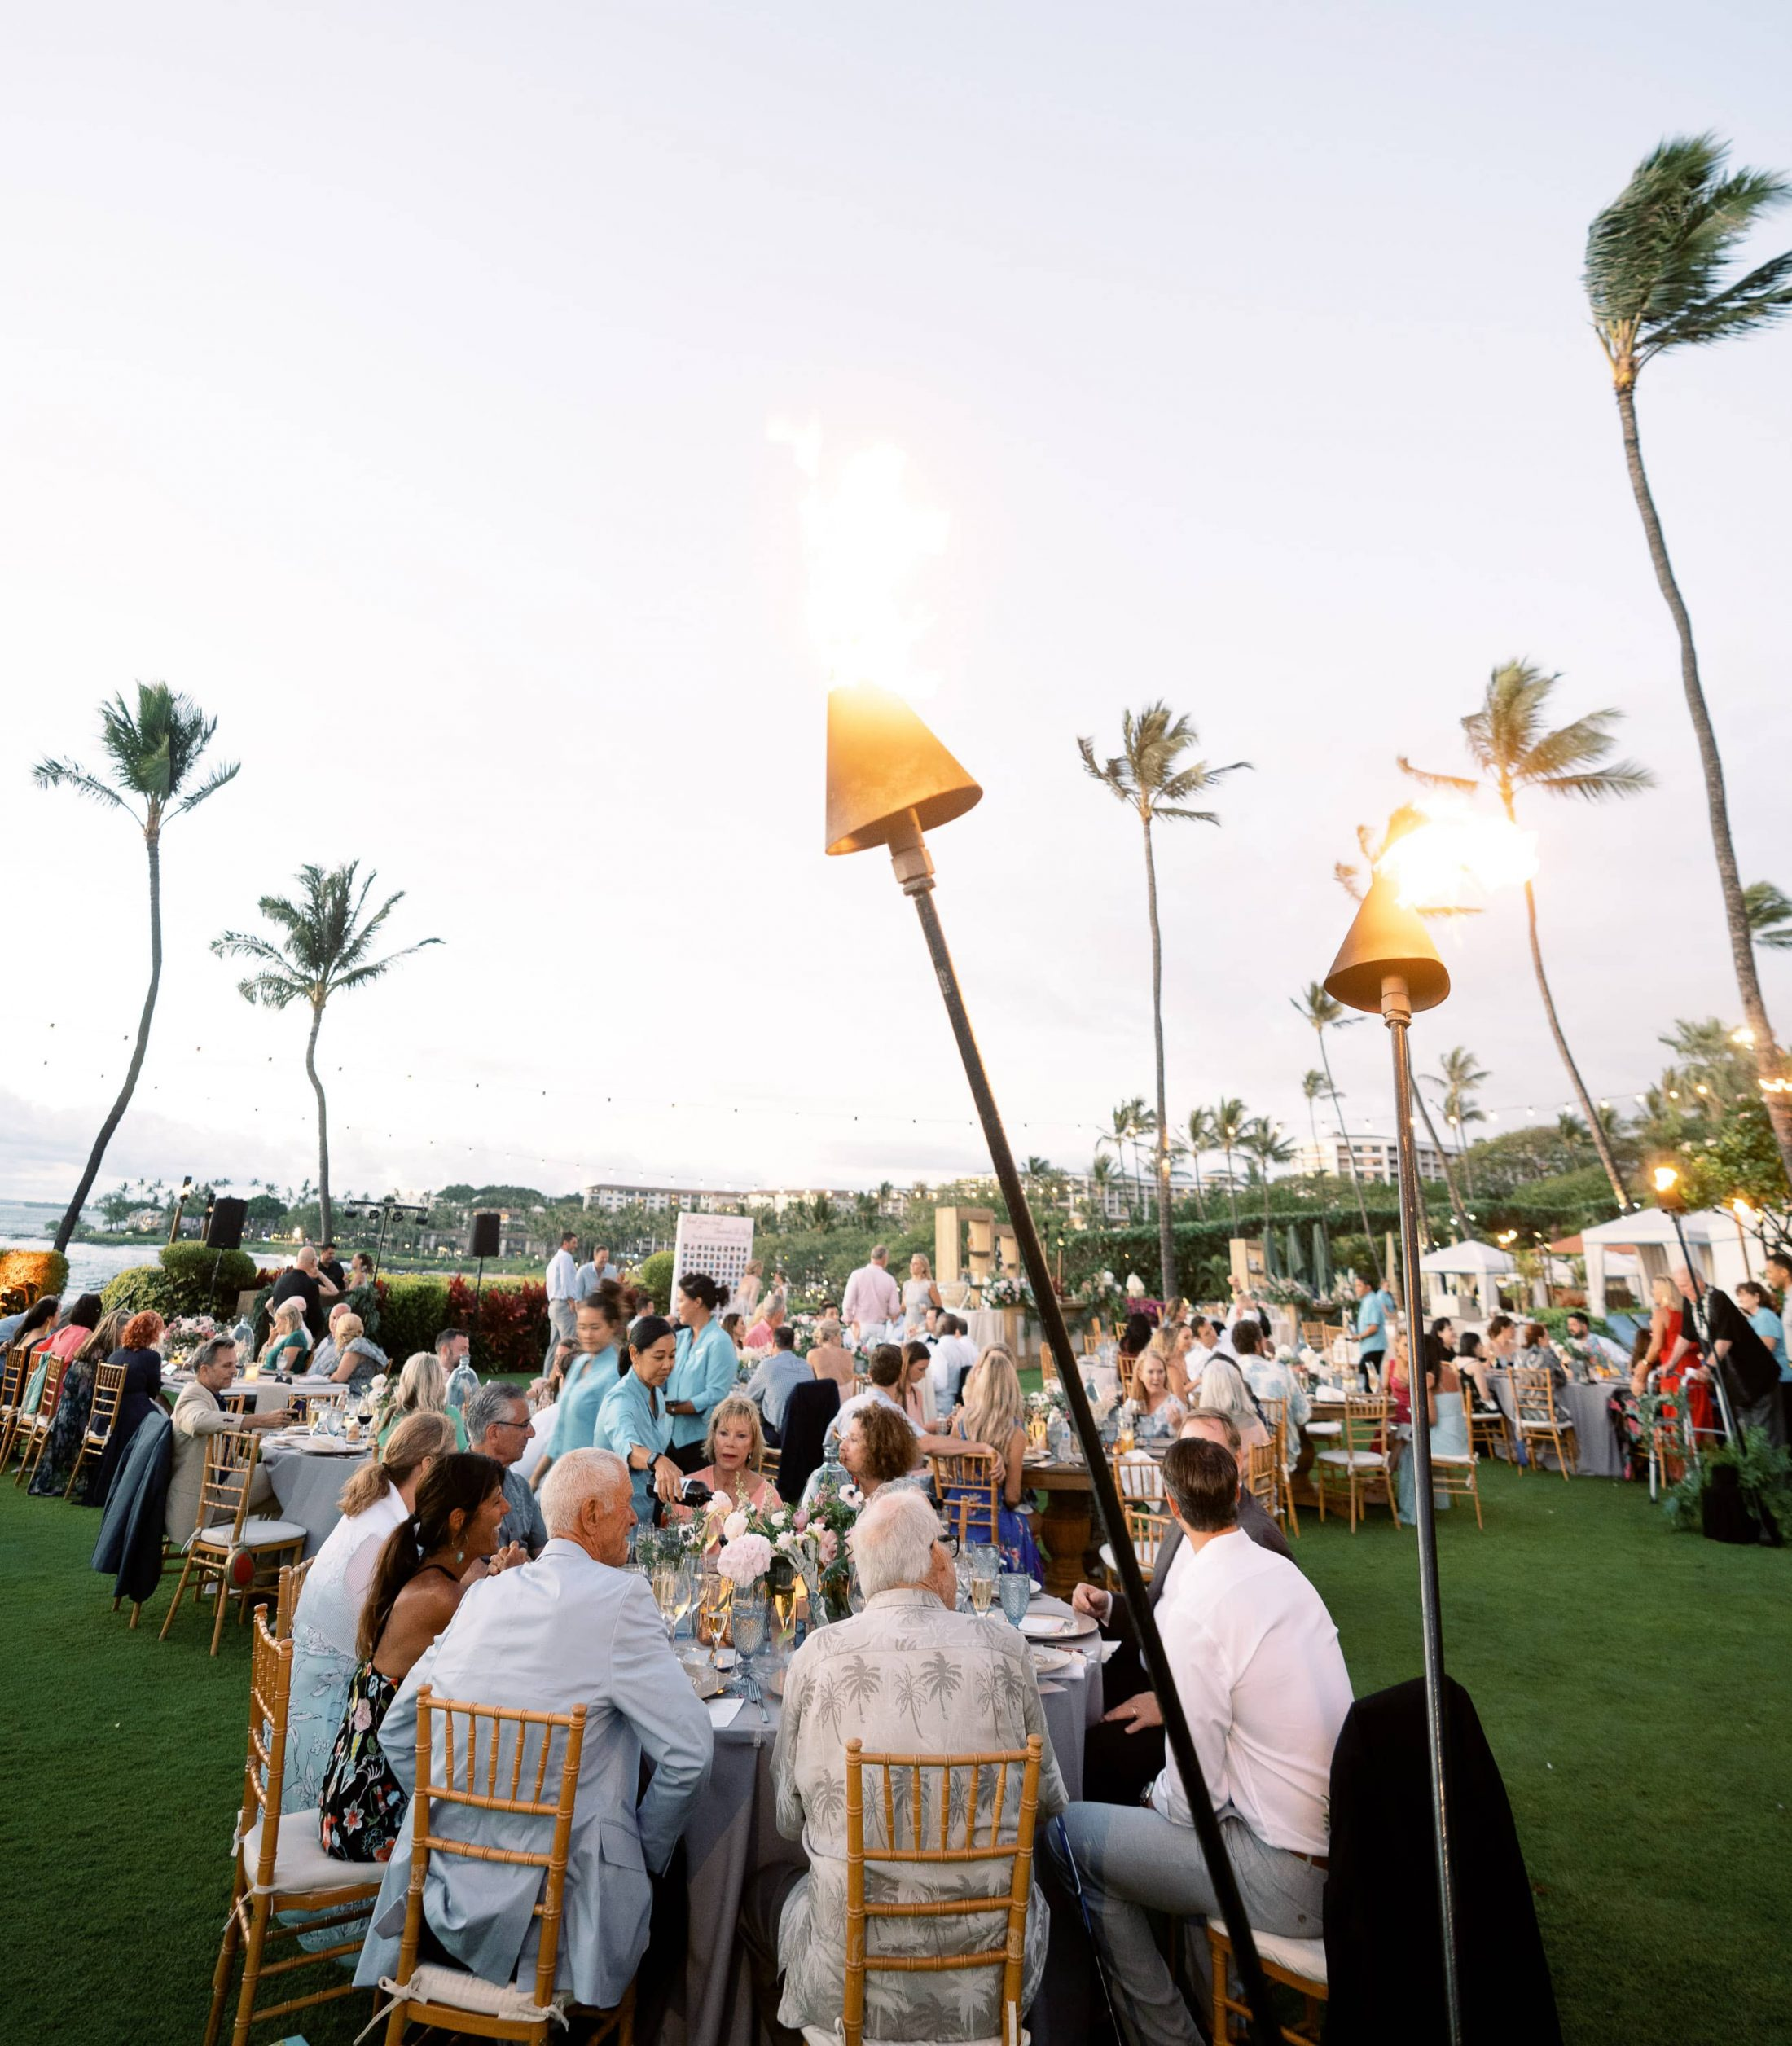 Outdoor reception at Maui wedding at Four Seasons Resort Maui in Wailea, Hawaii | Photo by James x Schulze